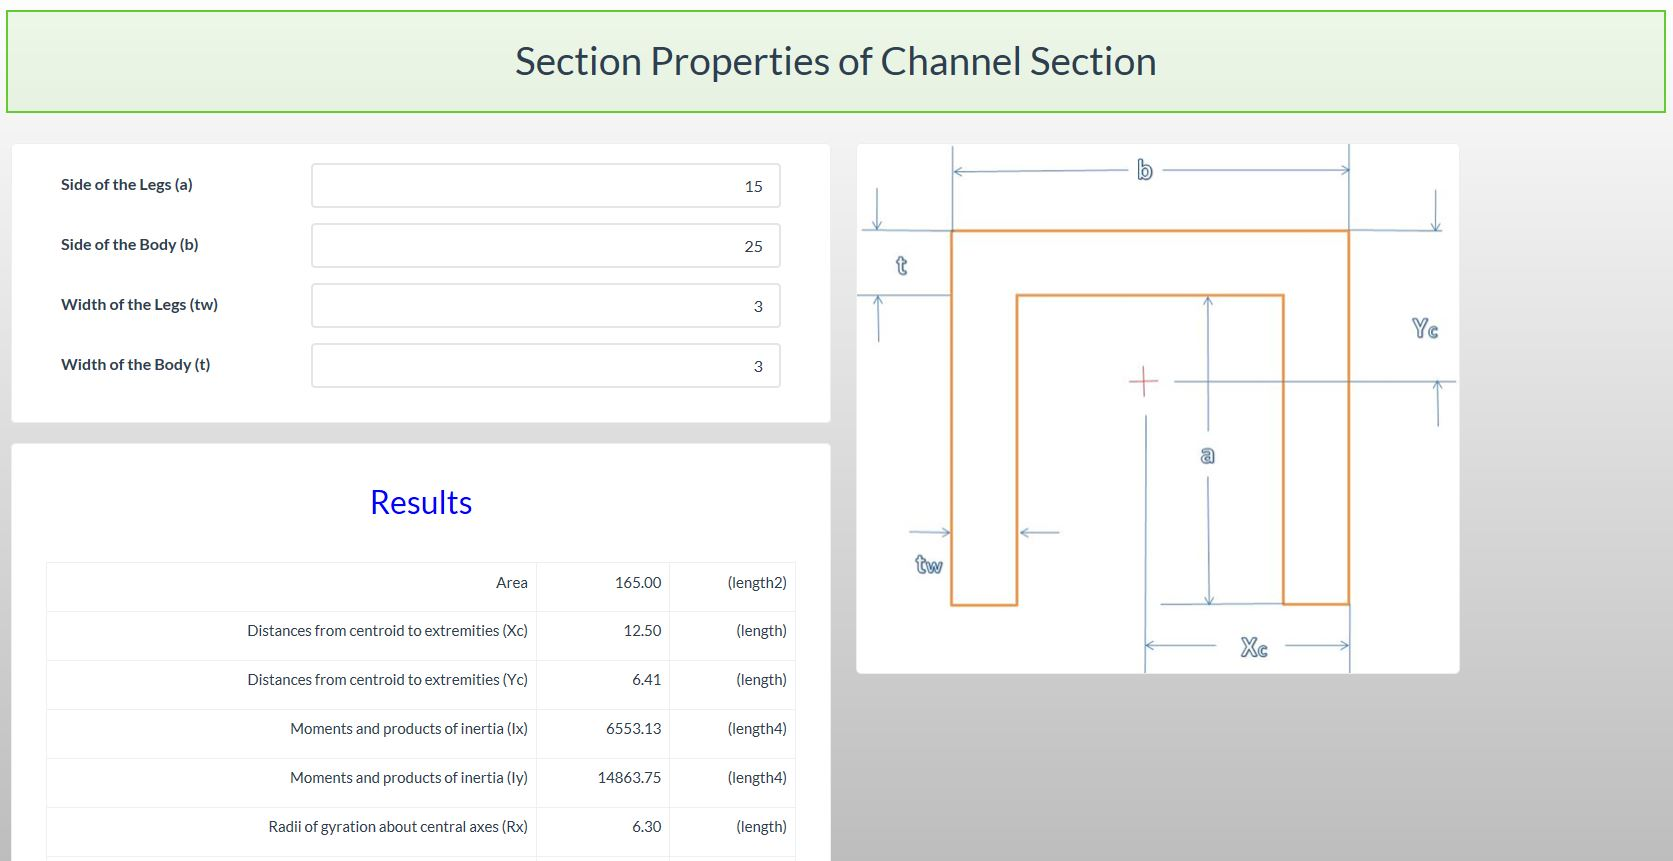 Section Properties Calculator - Channel Section